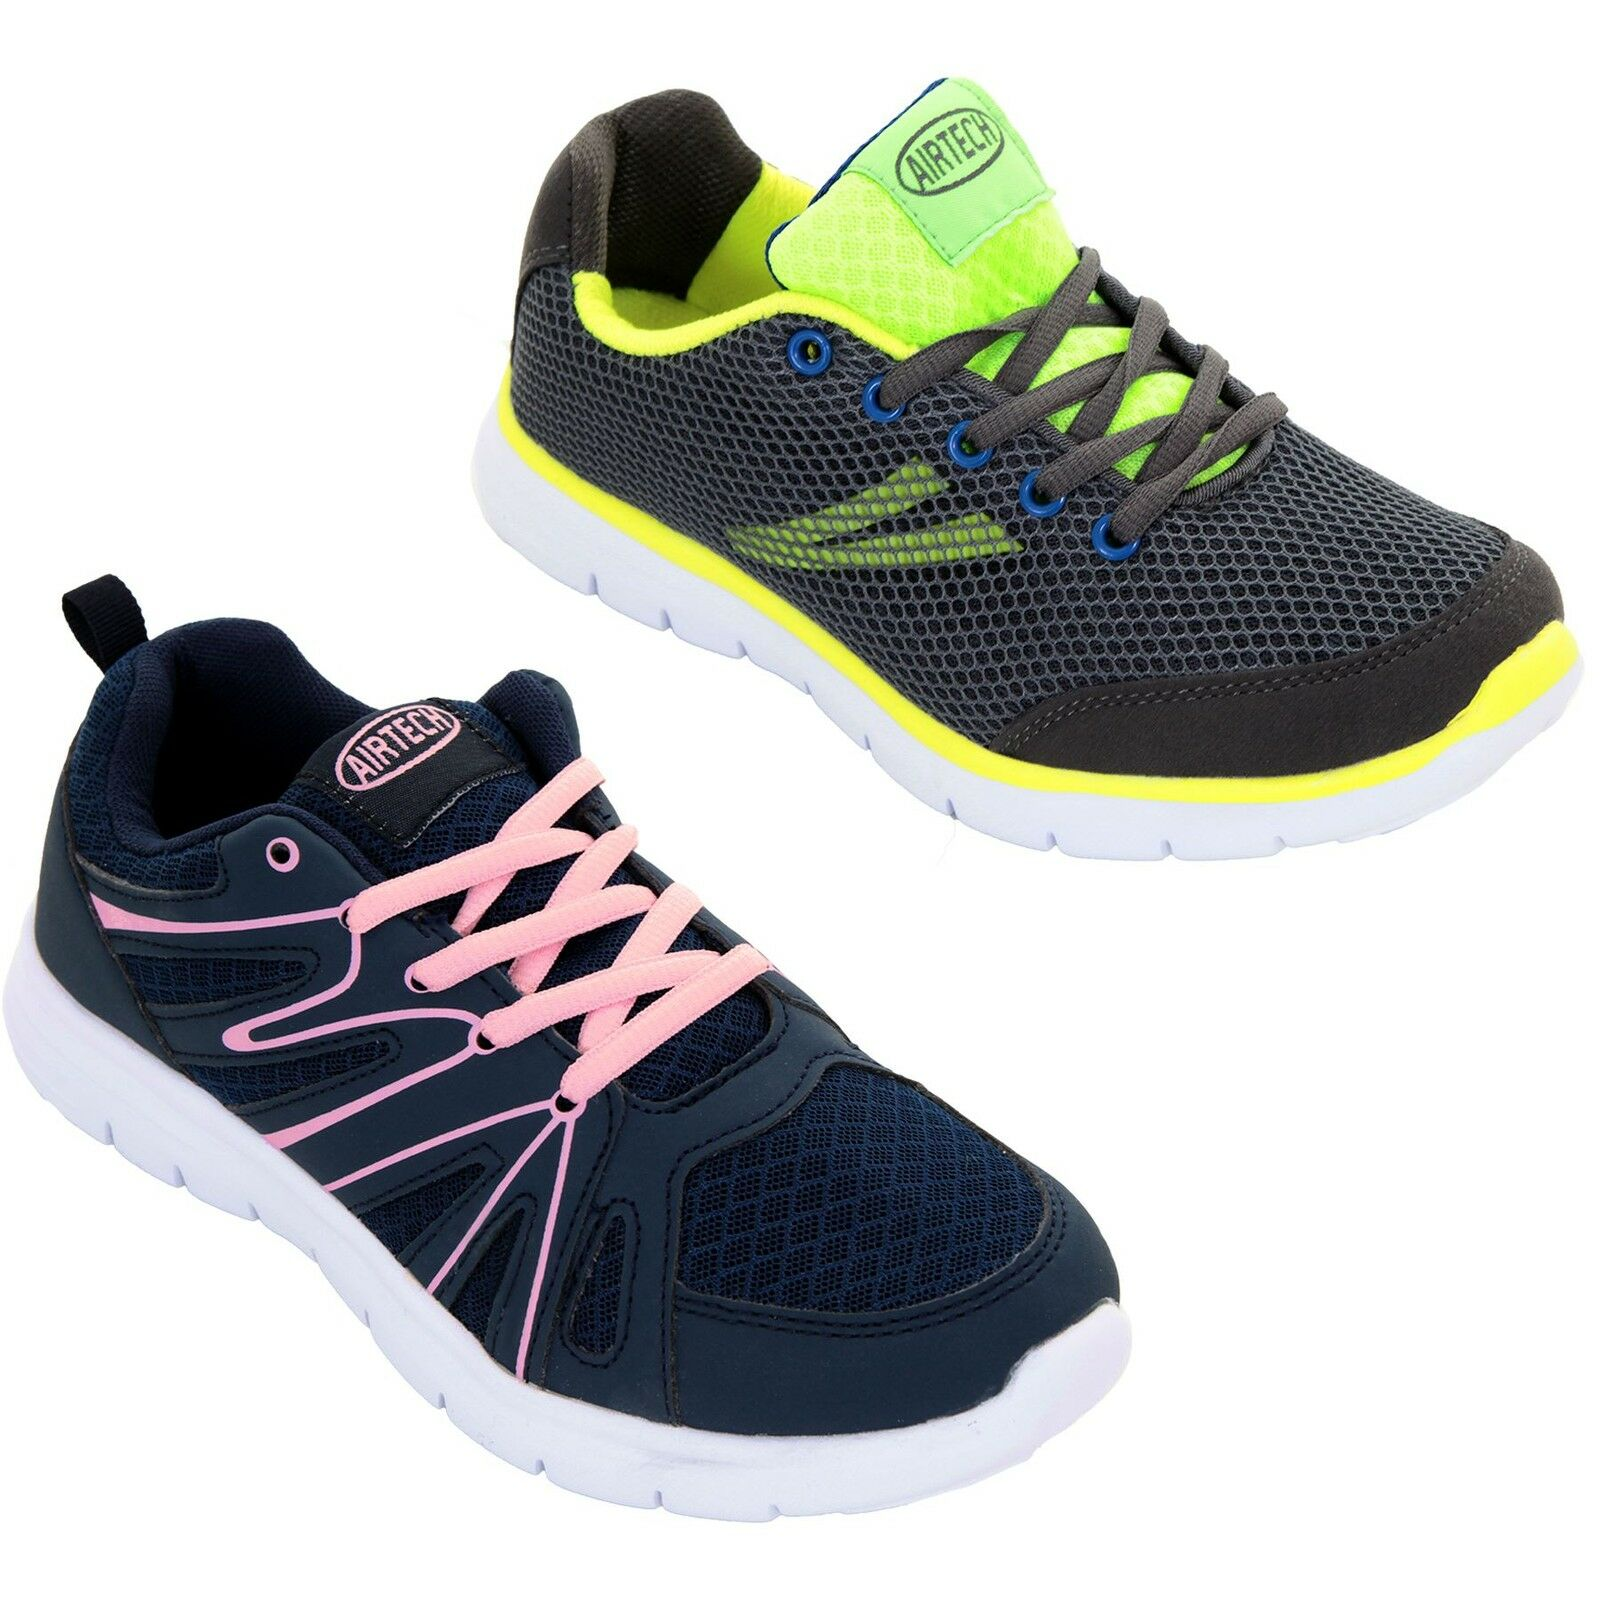 Men's/Women's Ladies Mesh Padded Neon Lace Up Sneakers Flat special Shoes Sport Trainers wholesale special Flat promotion Exquisite processing RB625 05be6a